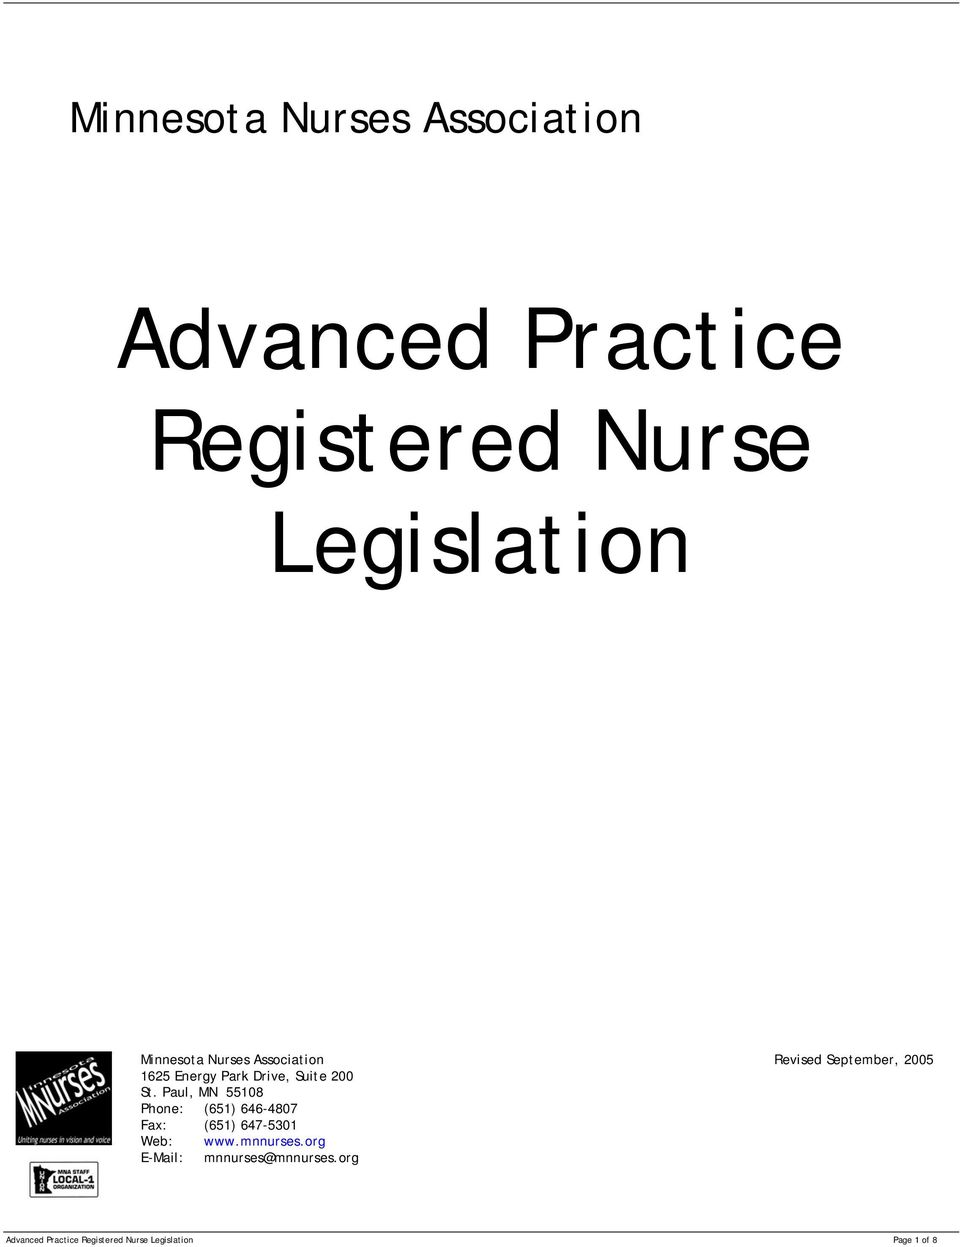 Advanced Practice Registered Nurse Legislation - PDF